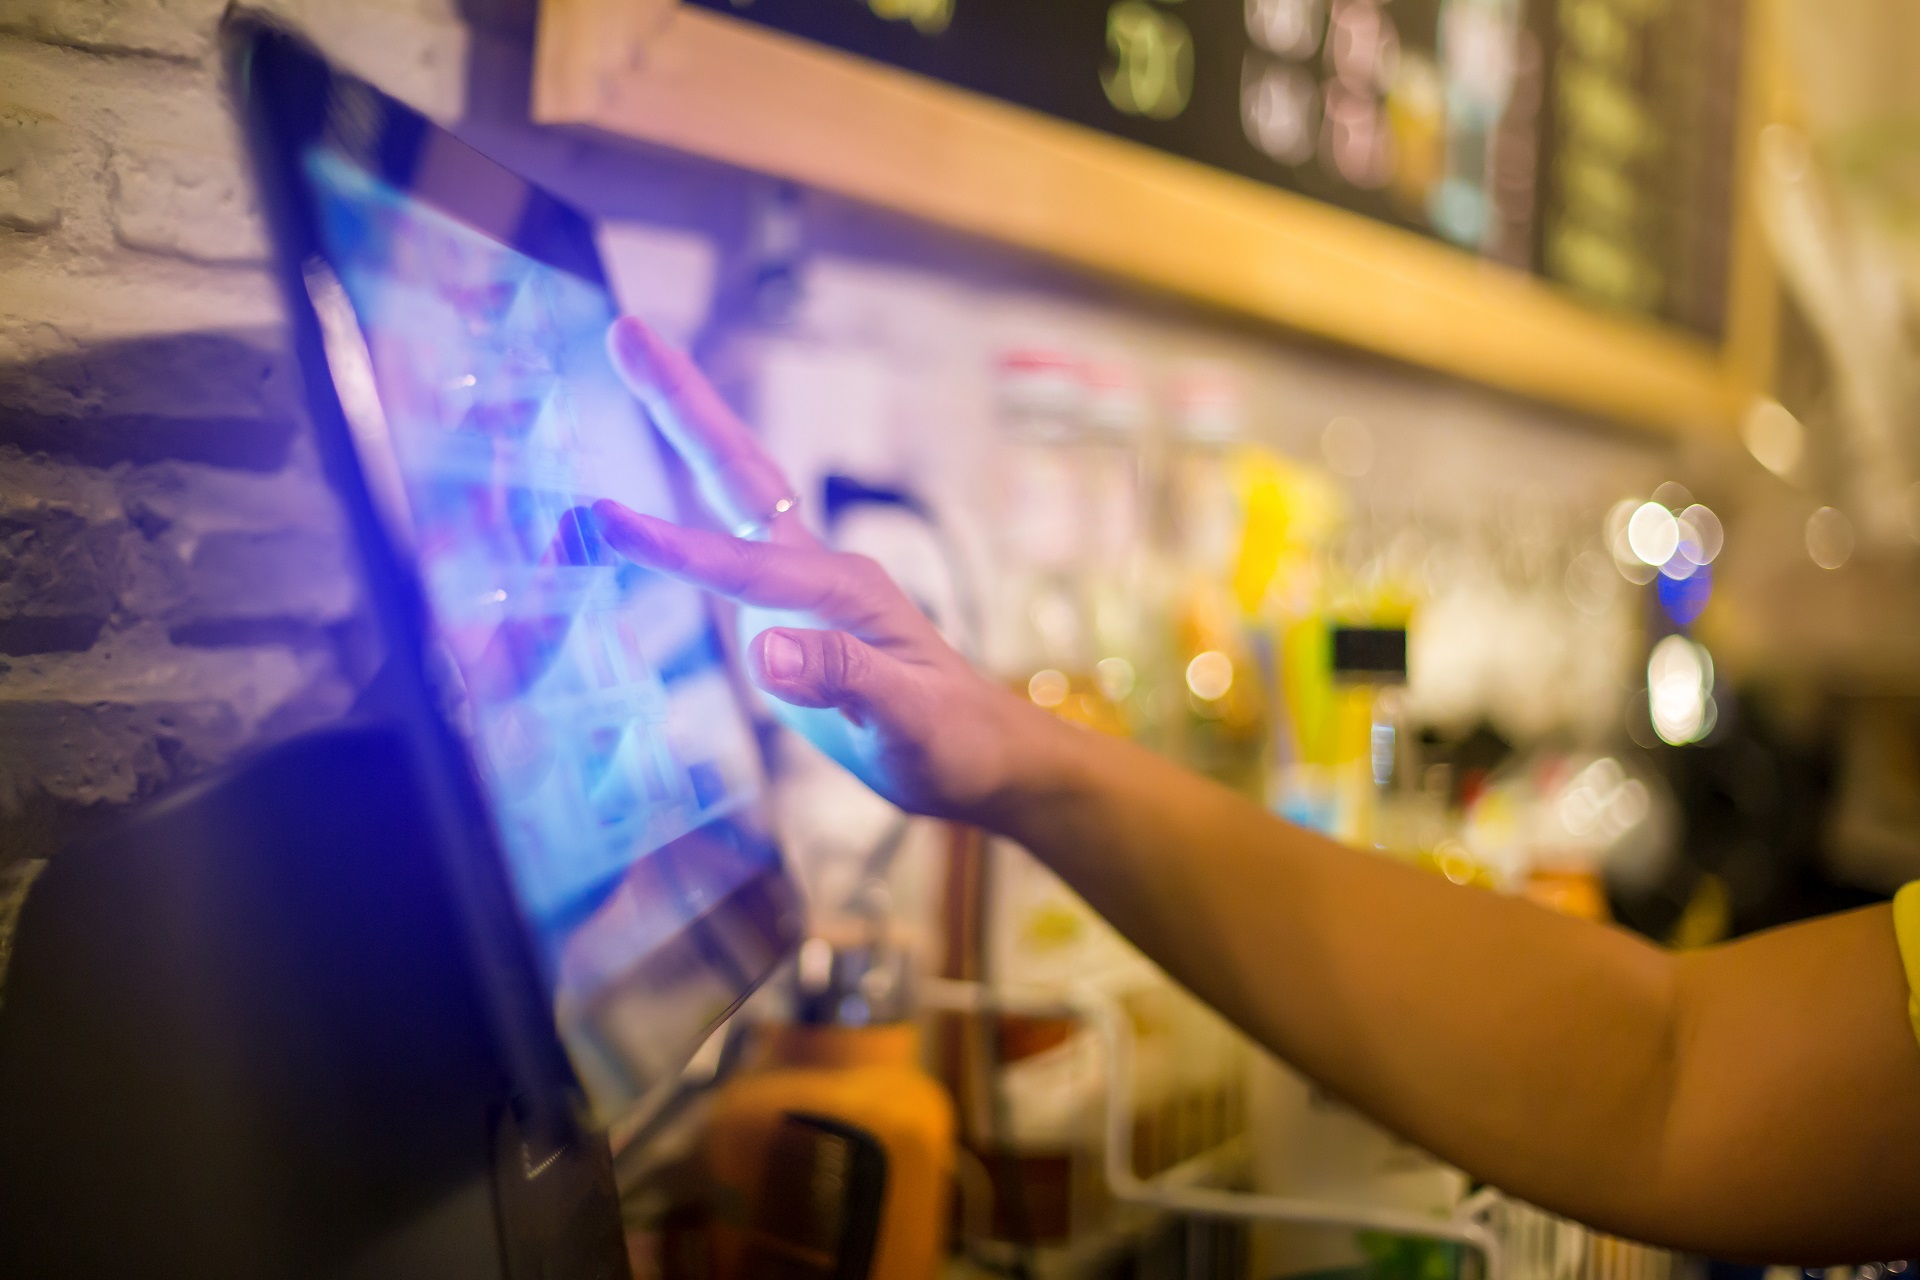 Blurry picture of cashier is making order on touch screen of computer in cafe or store. Barista is using the screen to receive orders from customers who are pointing to order coffee.